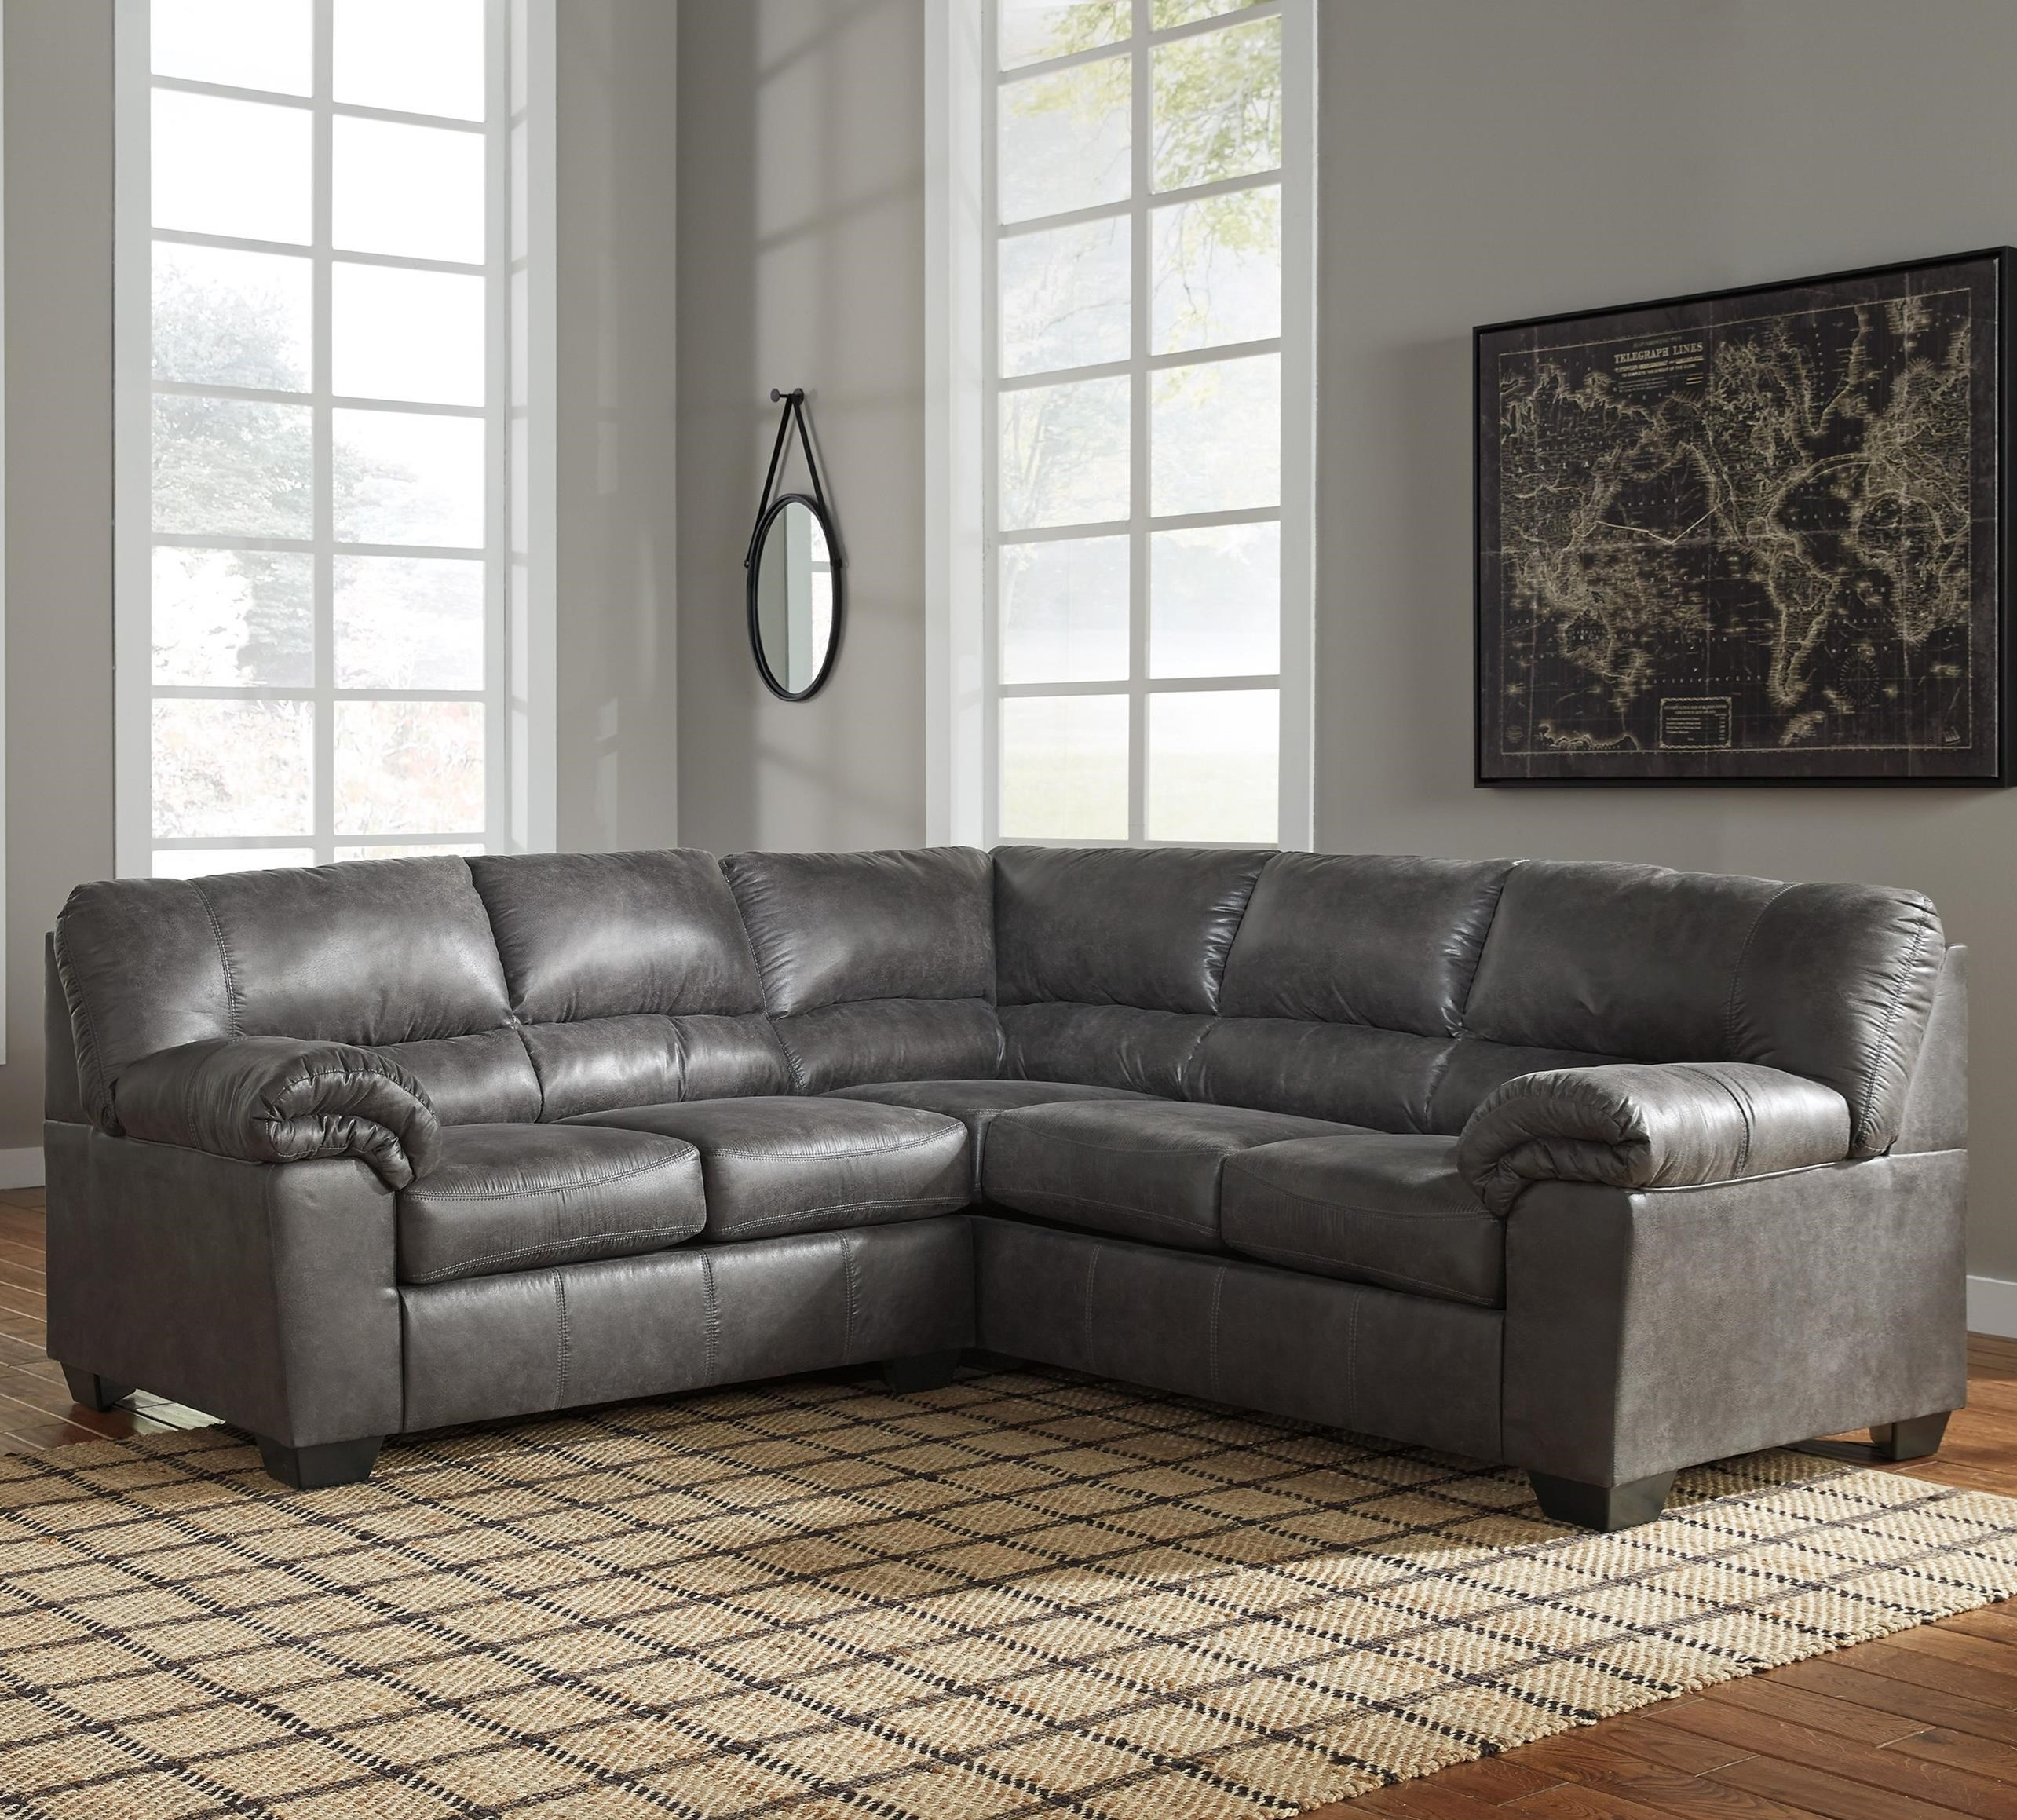 Bladen 2-Piece Sectional by Signature Design by Ashley at Northeast Factory Direct